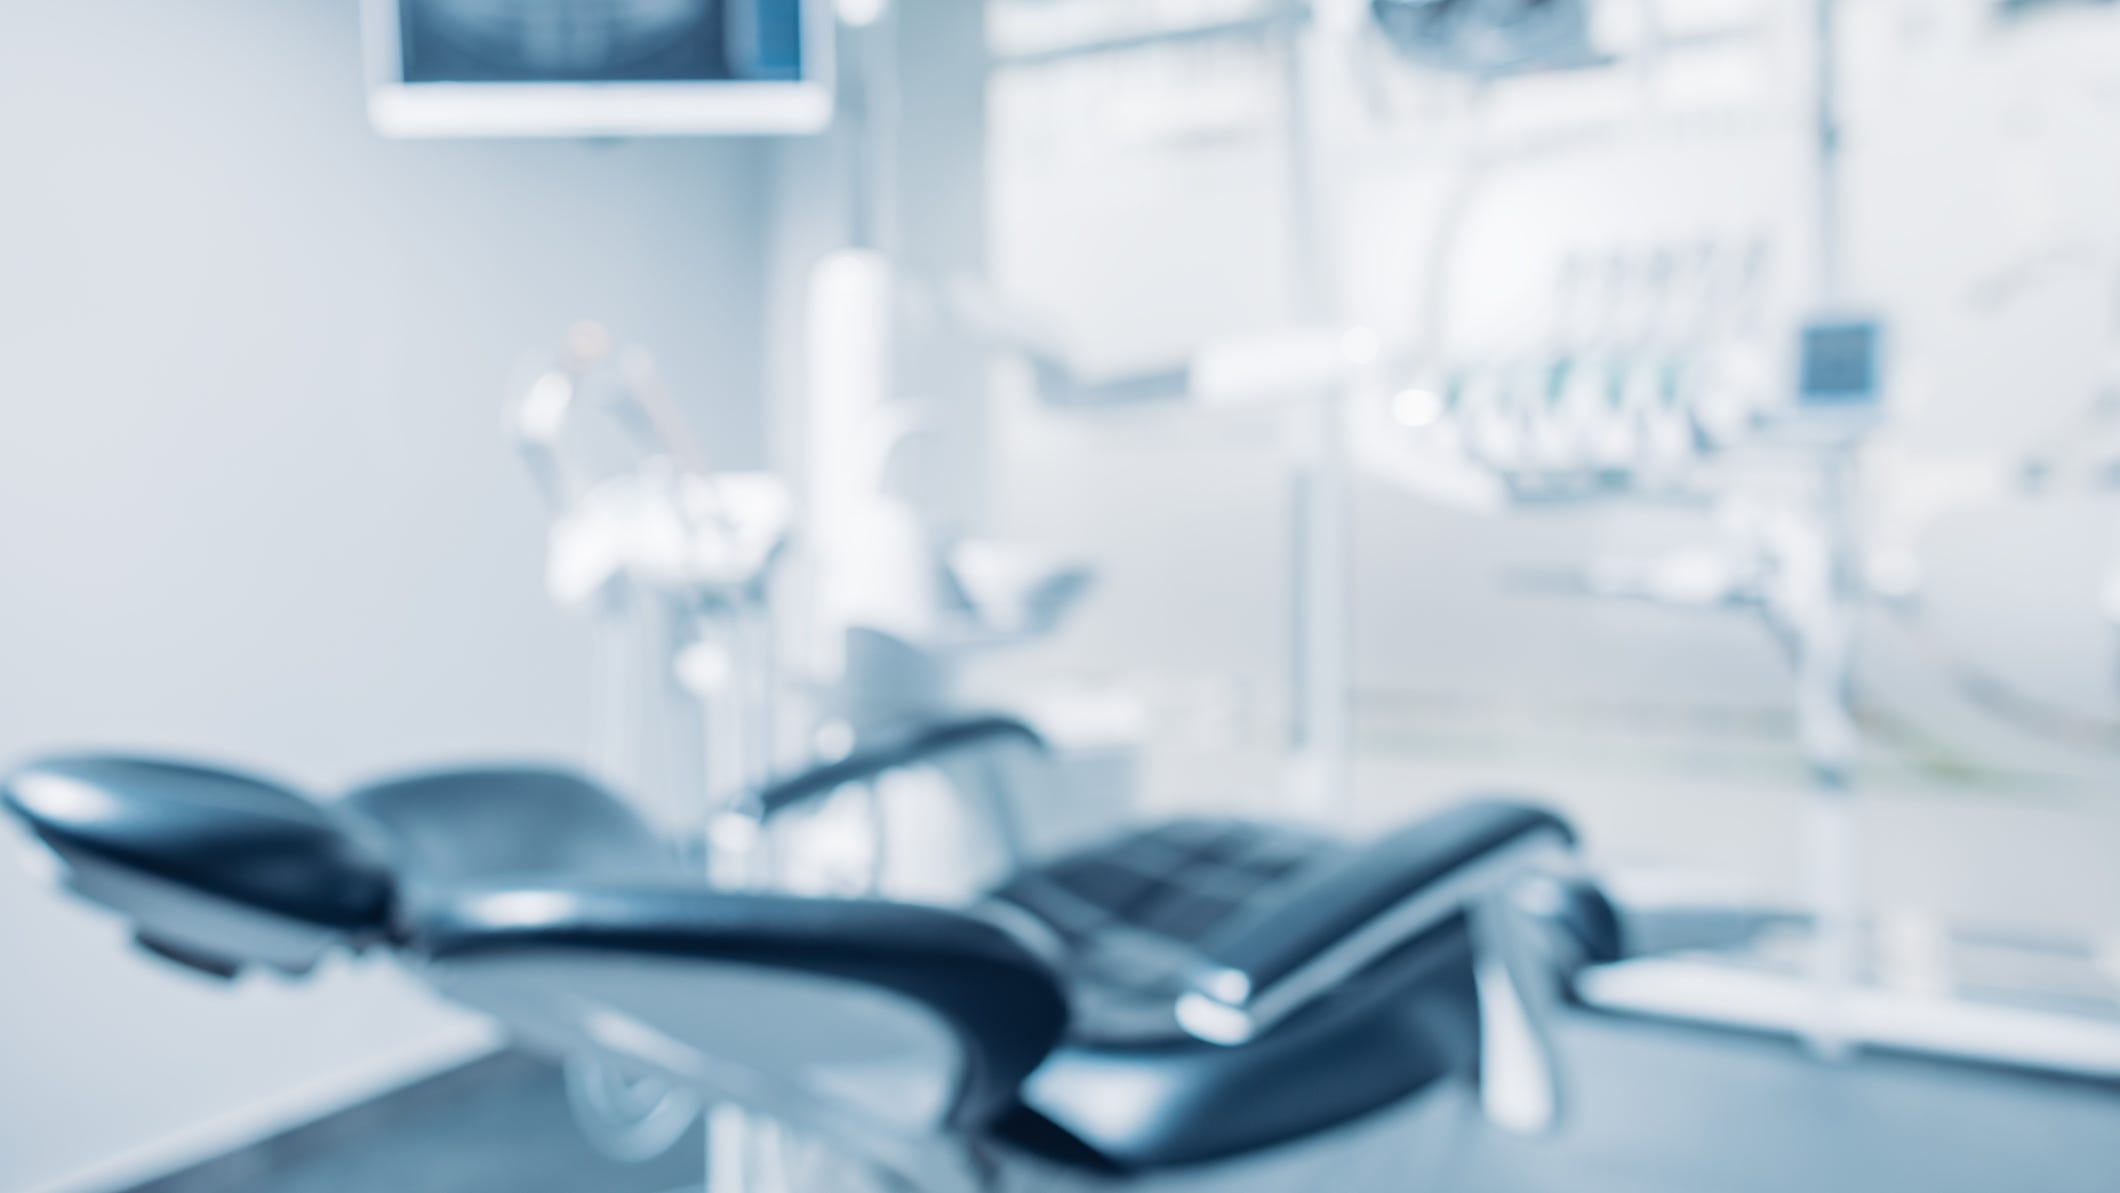 Iowa fines dental hygienist $100 for coming into work after positive COVID-19 test 1